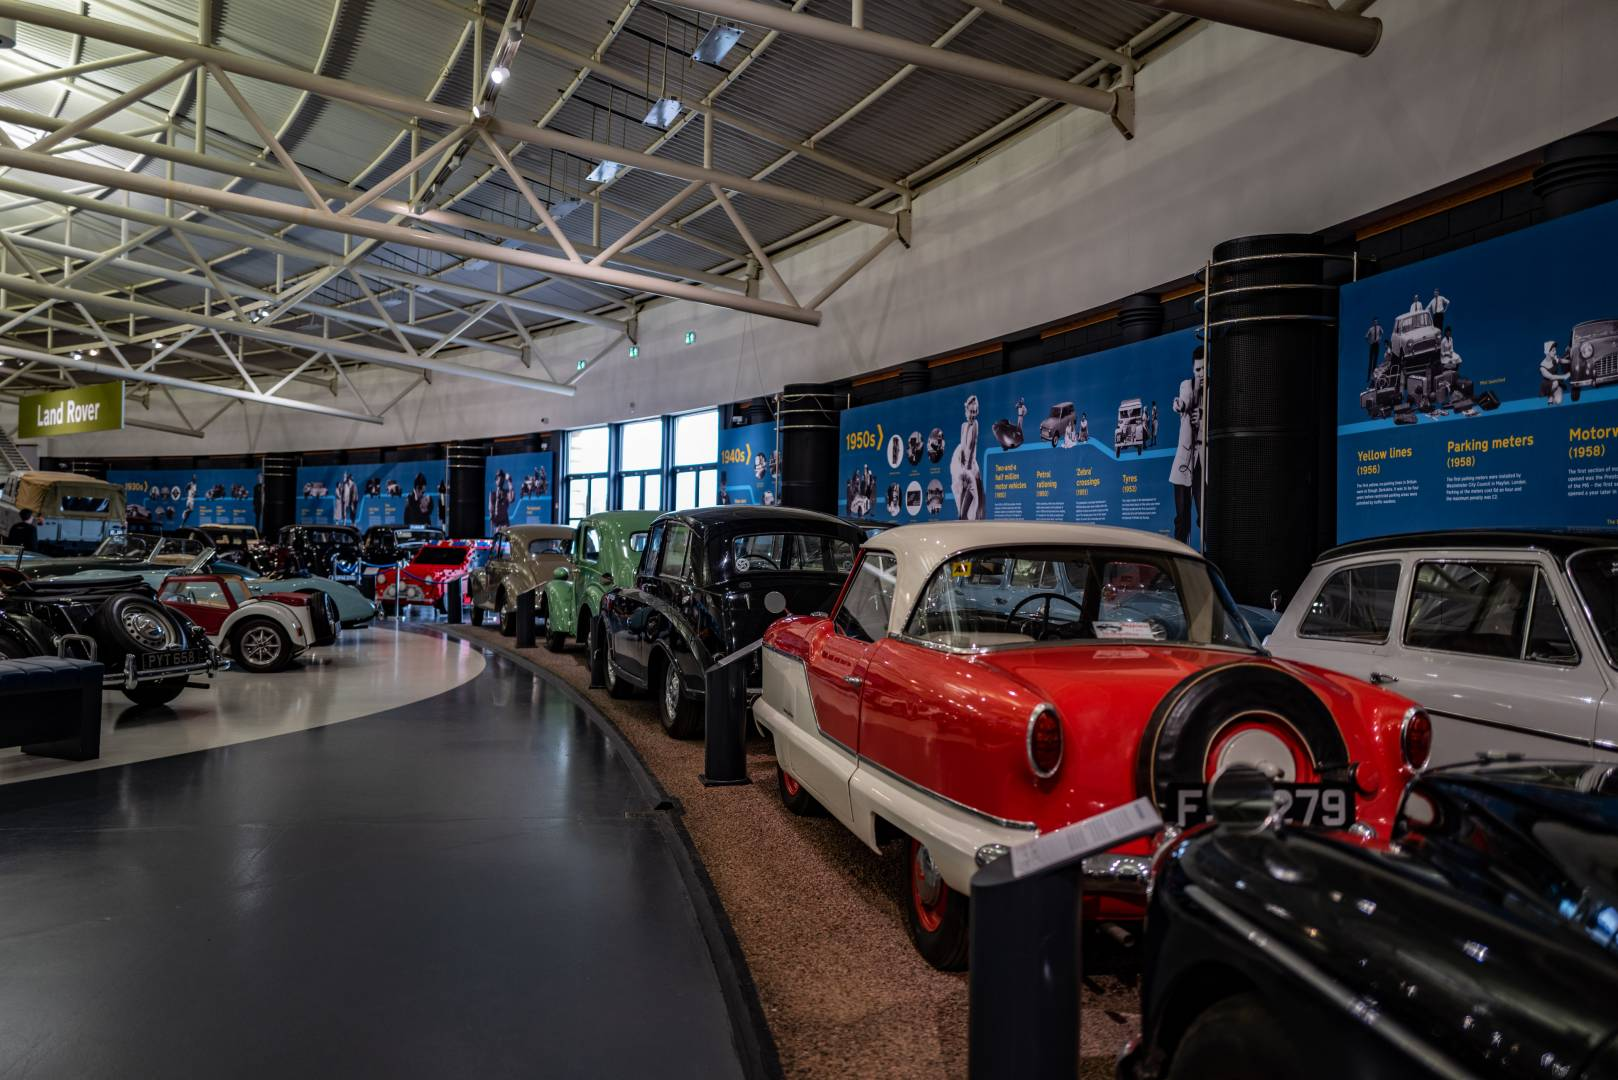 The museum is dedicated to cars made in Britain at a time when the industry was one of the leading members of the world automotive industry. Sadly, in the late 1960s and 1970s, strikes, poor quality and a multitude of management problems virtually killed off the British car.